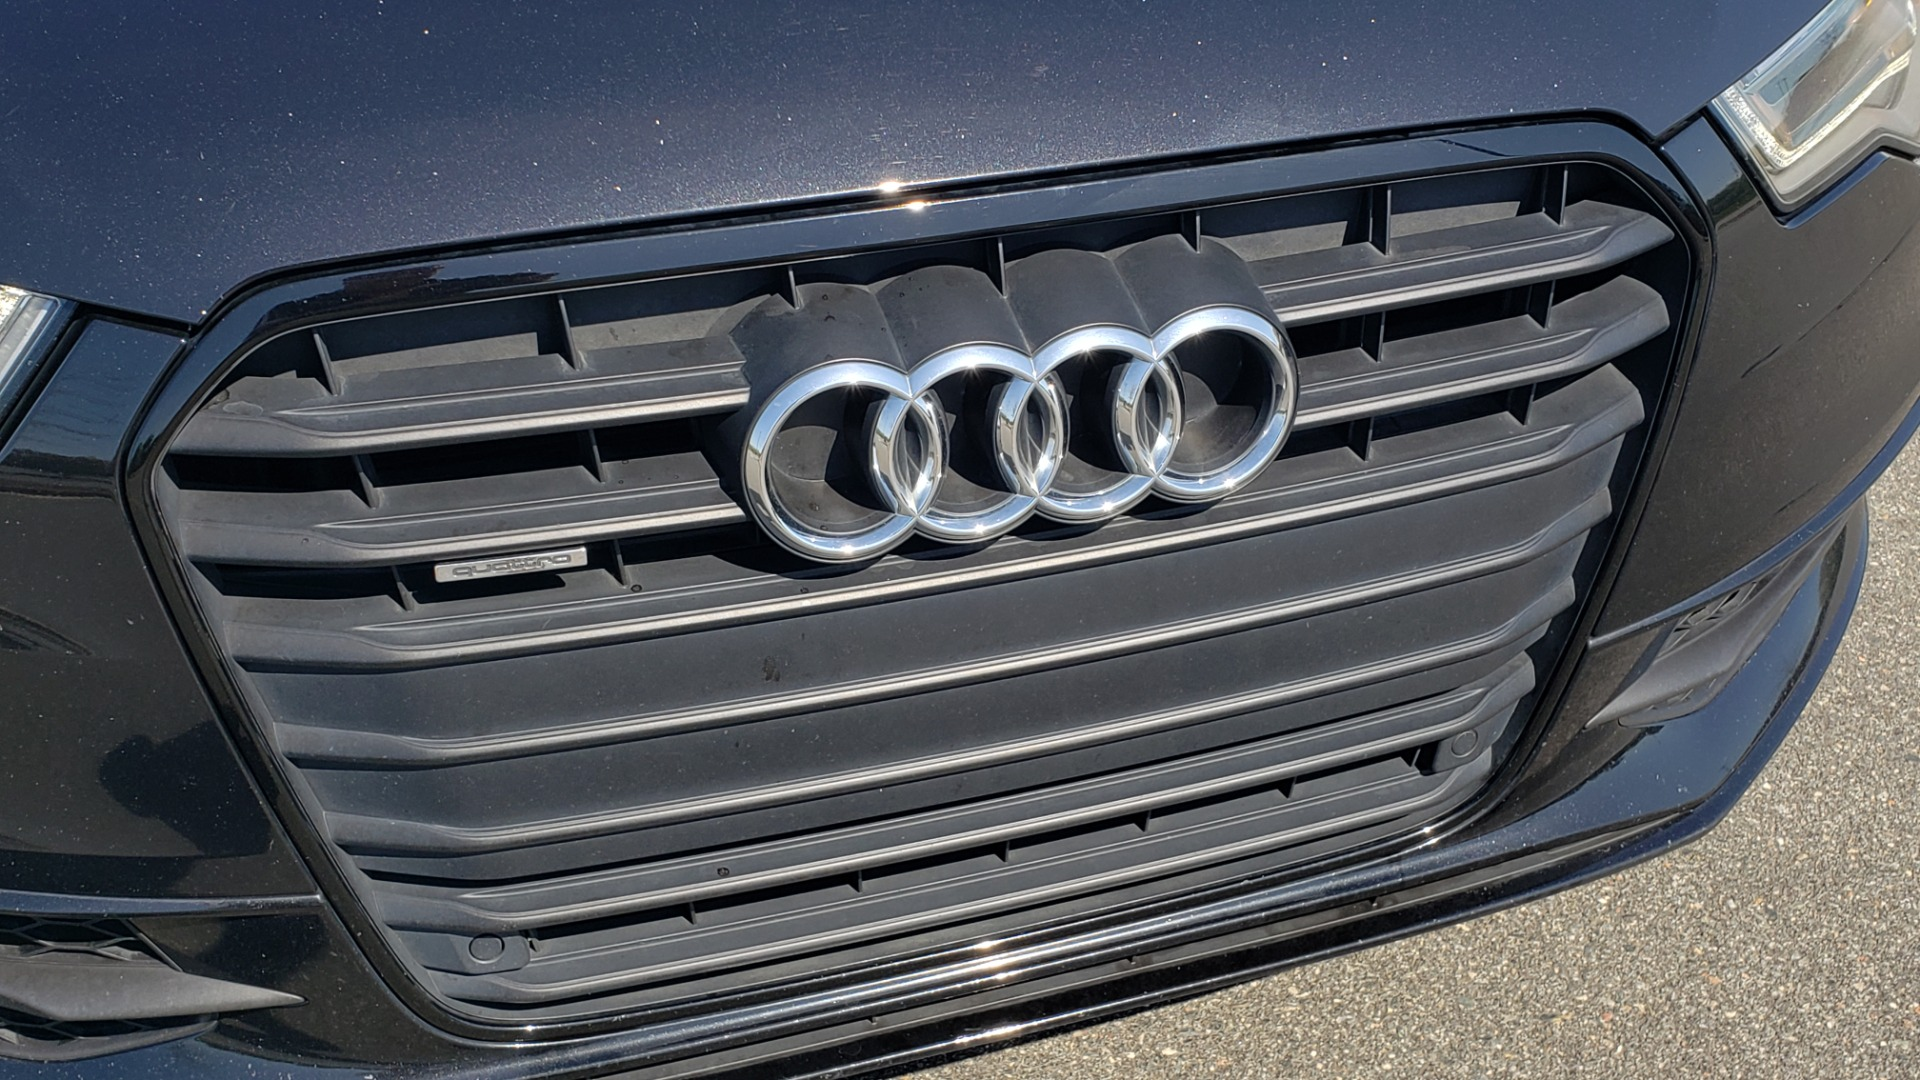 Used 2015 Audi A6 3.0T PRESTIGE / BLACK OPTIC / CLD WTHR / BOSE / HUD / SUNROOF for sale Sold at Formula Imports in Charlotte NC 28227 23